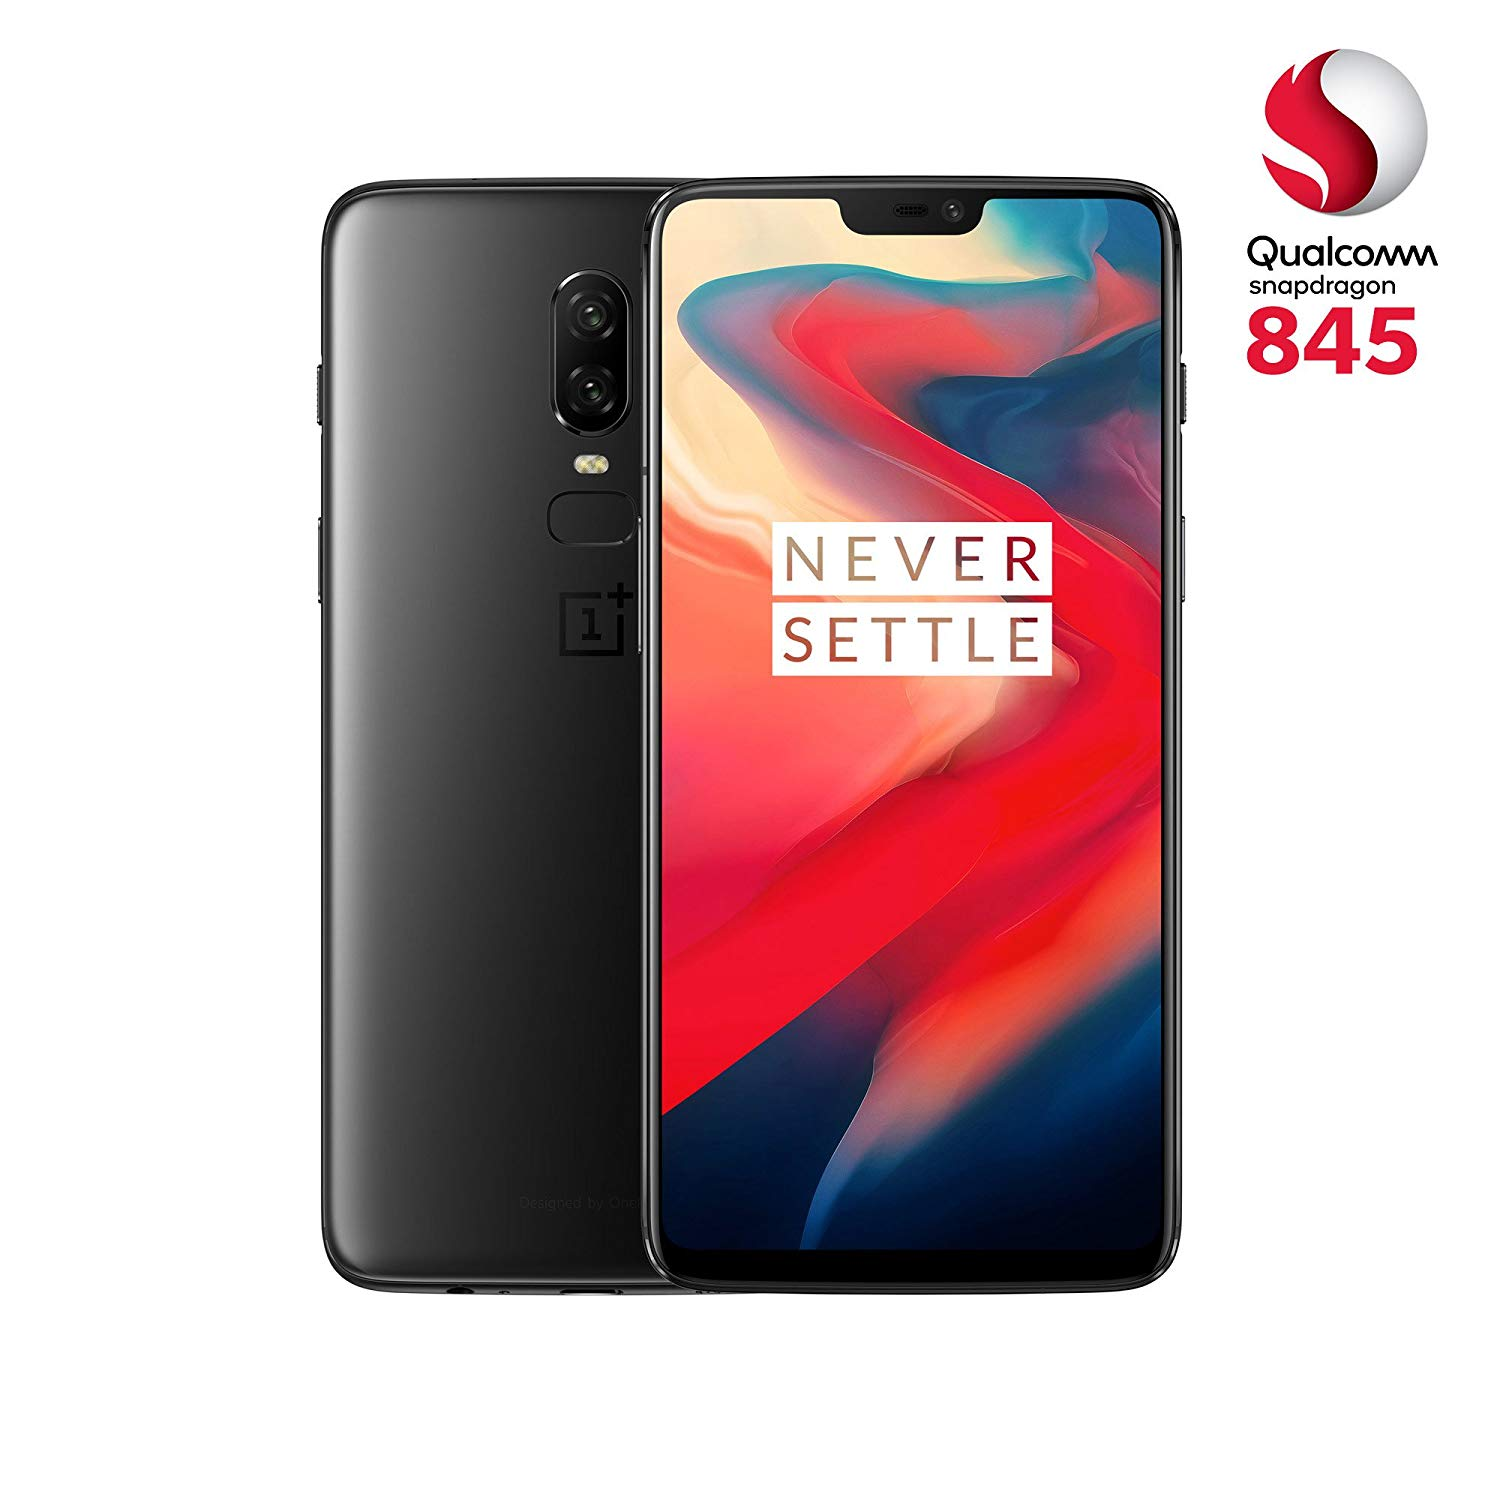 OnePlus 6 Smartphone amazon